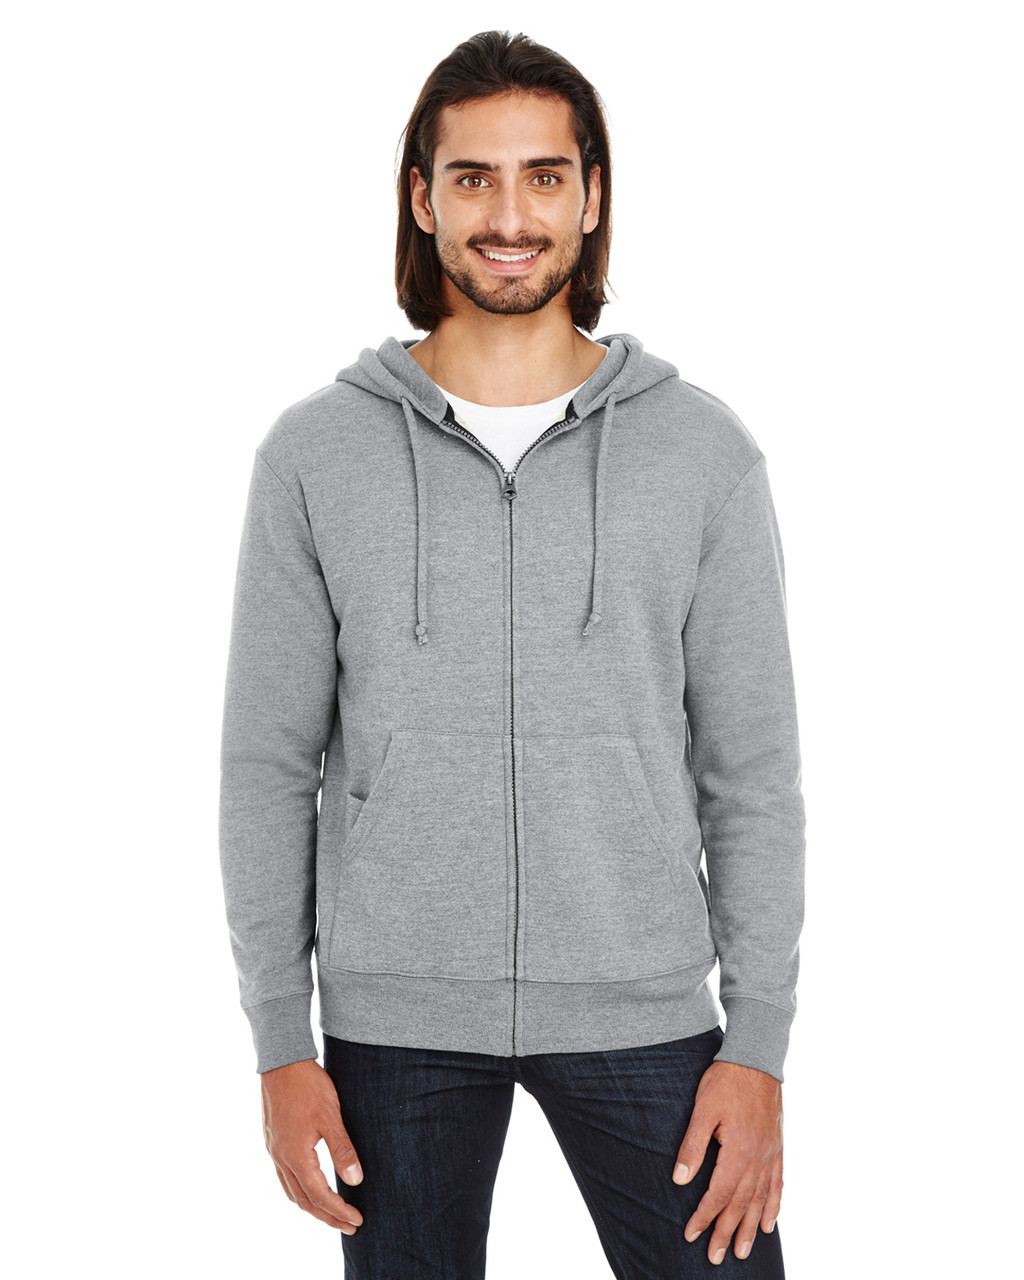 Charcoal Heather - 321Z Threadfast Unisex Triblend French Terry Full-Zip Sweater | Blankclothing.ca